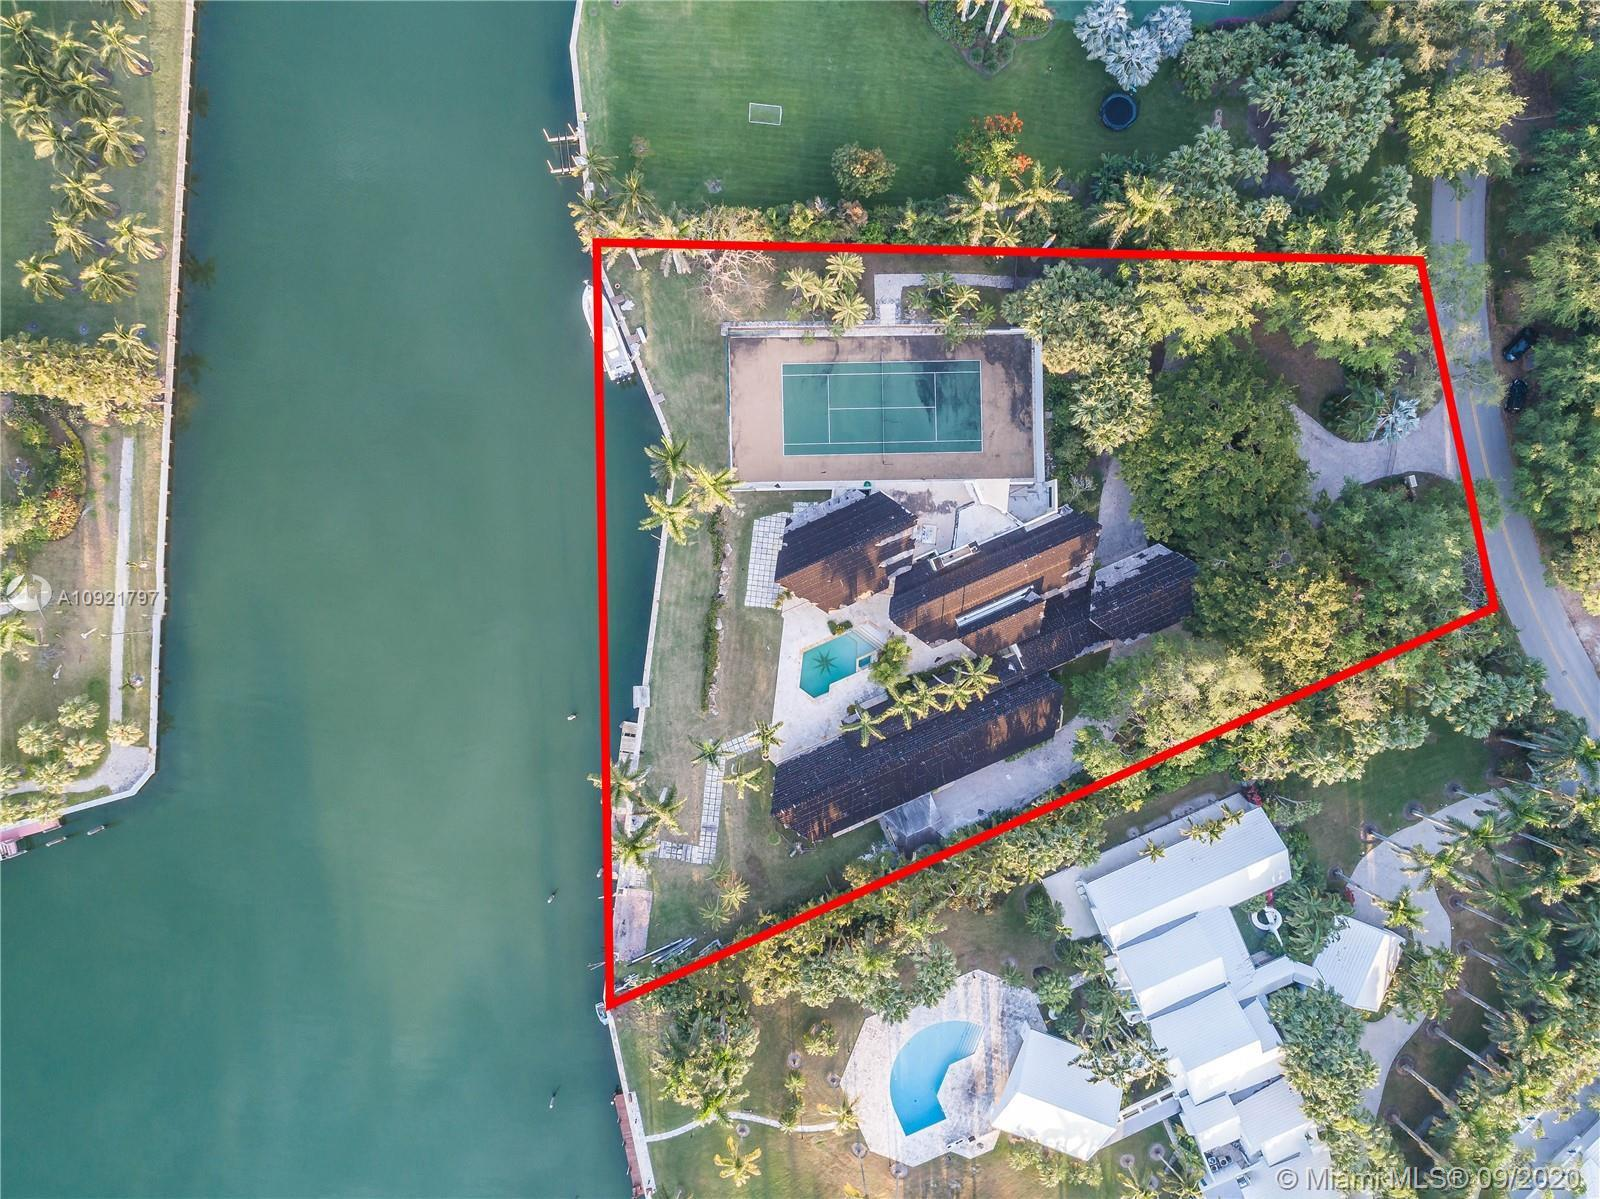 This 70,542 Sq. Ft. lot in prestigious Gables Estates comes with 302 feet of waterfront, a private dock, and no bridges to Biscayne Bay, a perfect setting for enjoying one of Miami's best lifestyles. With close proximity to schools, shopping, dining and entertainment in nearby neighborhoods, you will also appreciate the security and privacy in this gated enclave. The property is now an achievable dream, so don't miss out on the opportunity to make it your own!